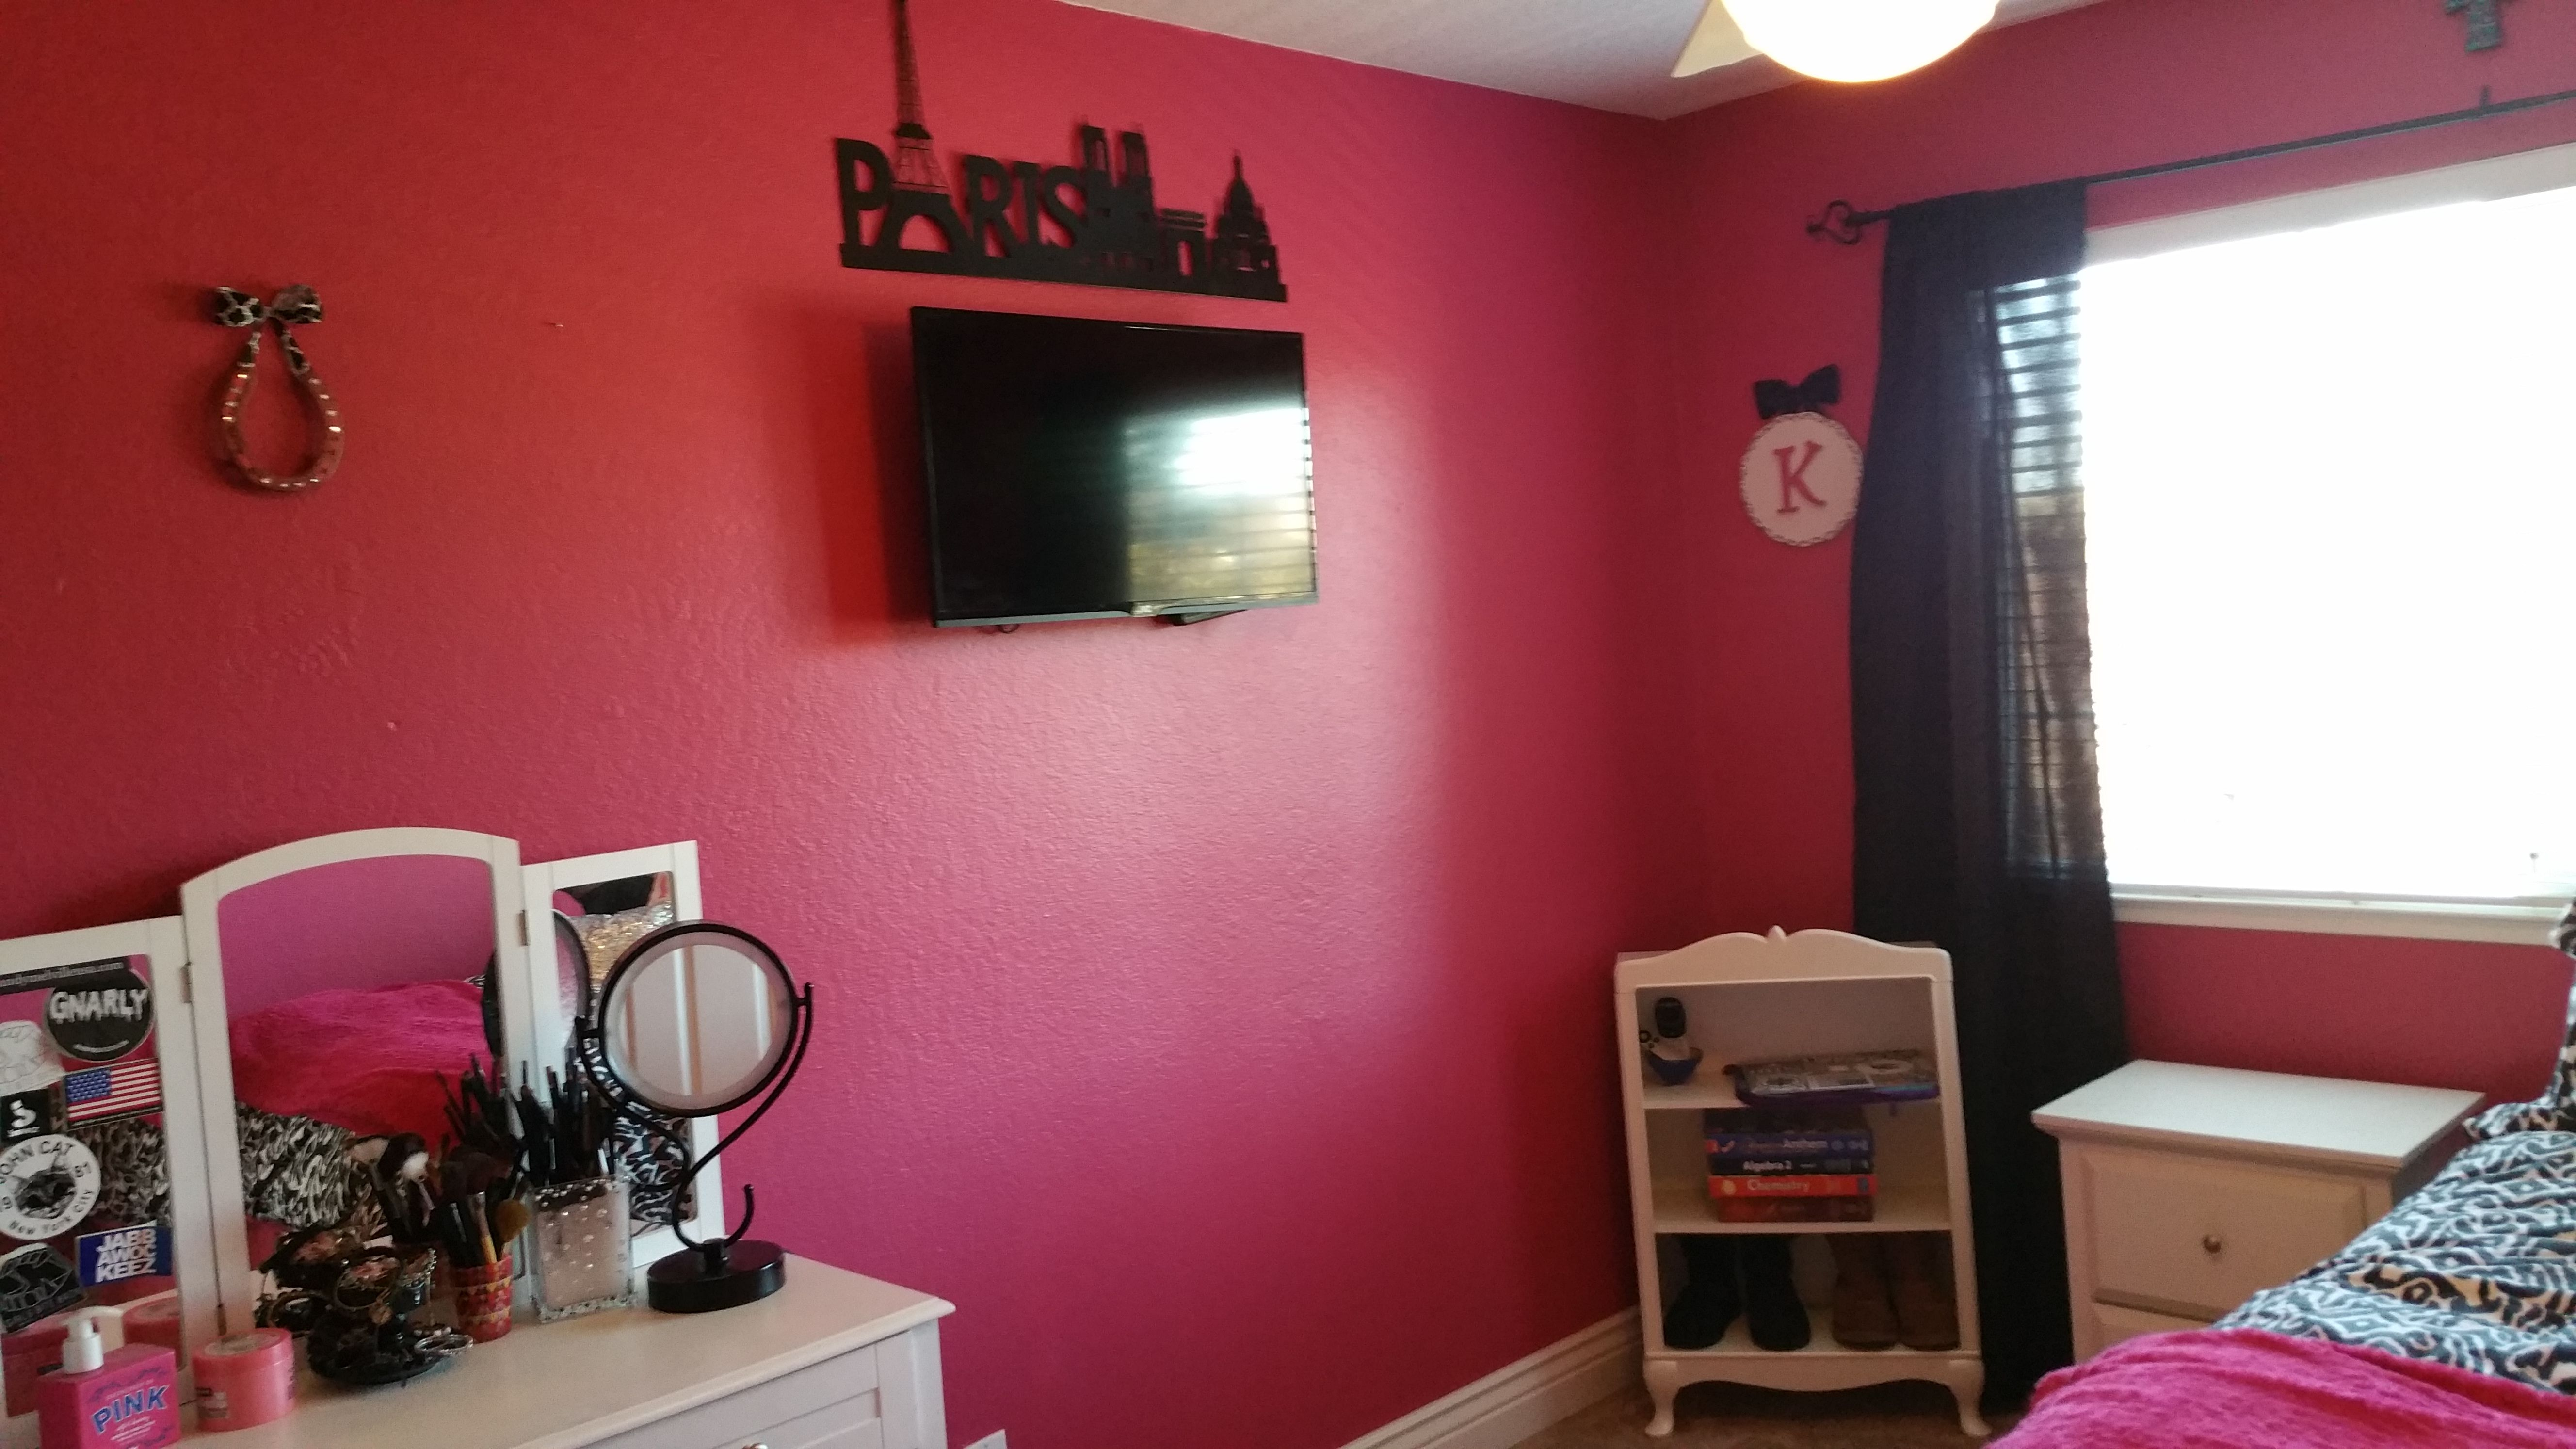 That is a PINK bedroom. How many coats of paint would you